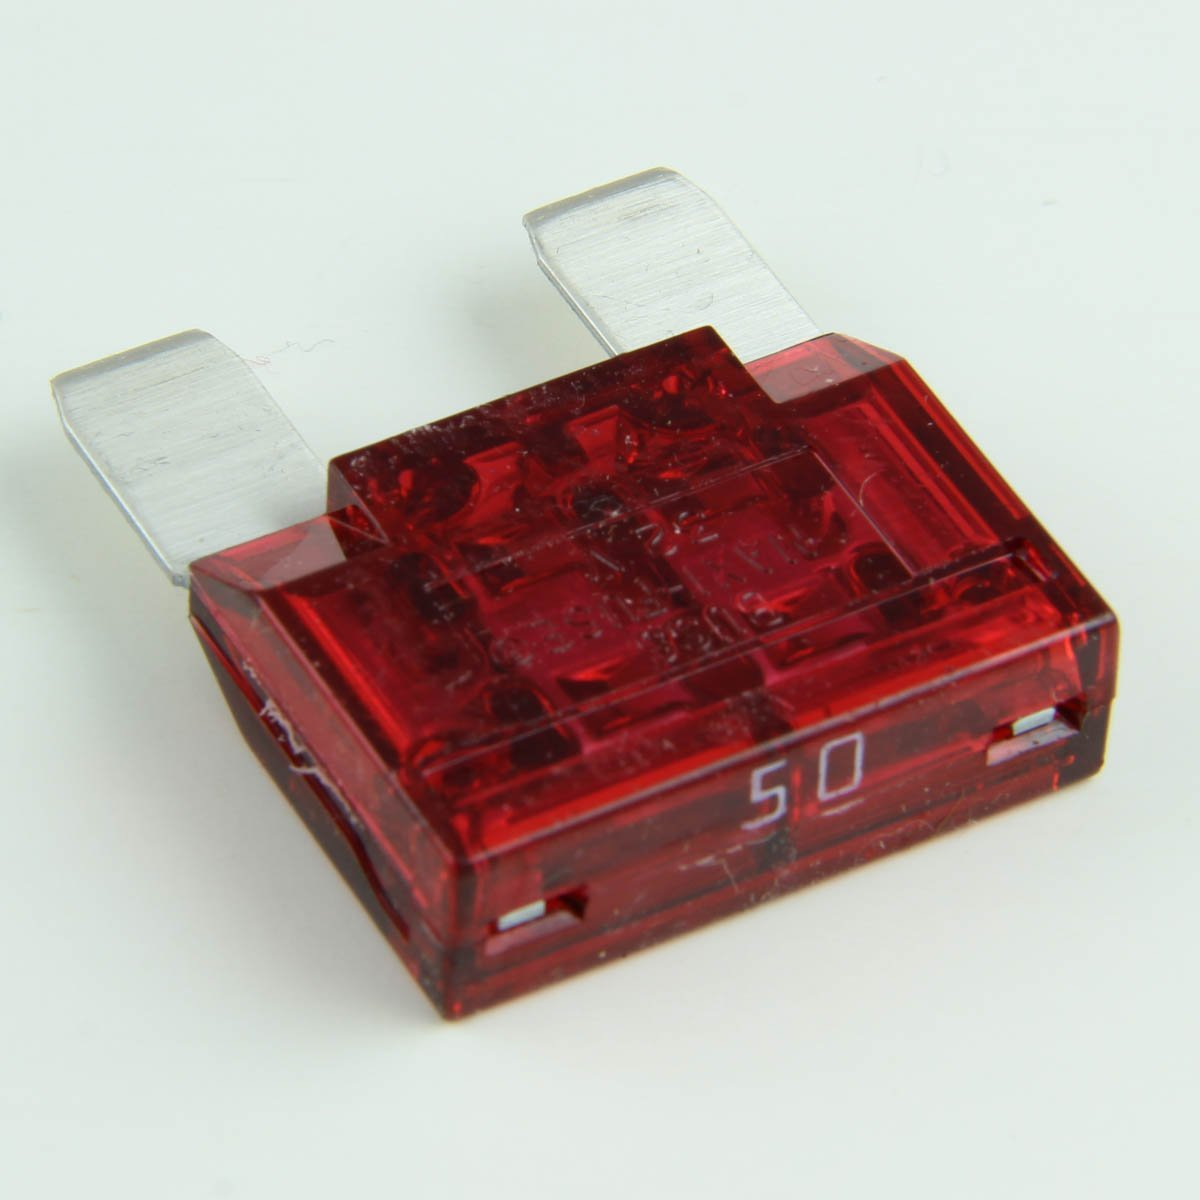 50 Amp Red Maxi Fuses (1 per pack)